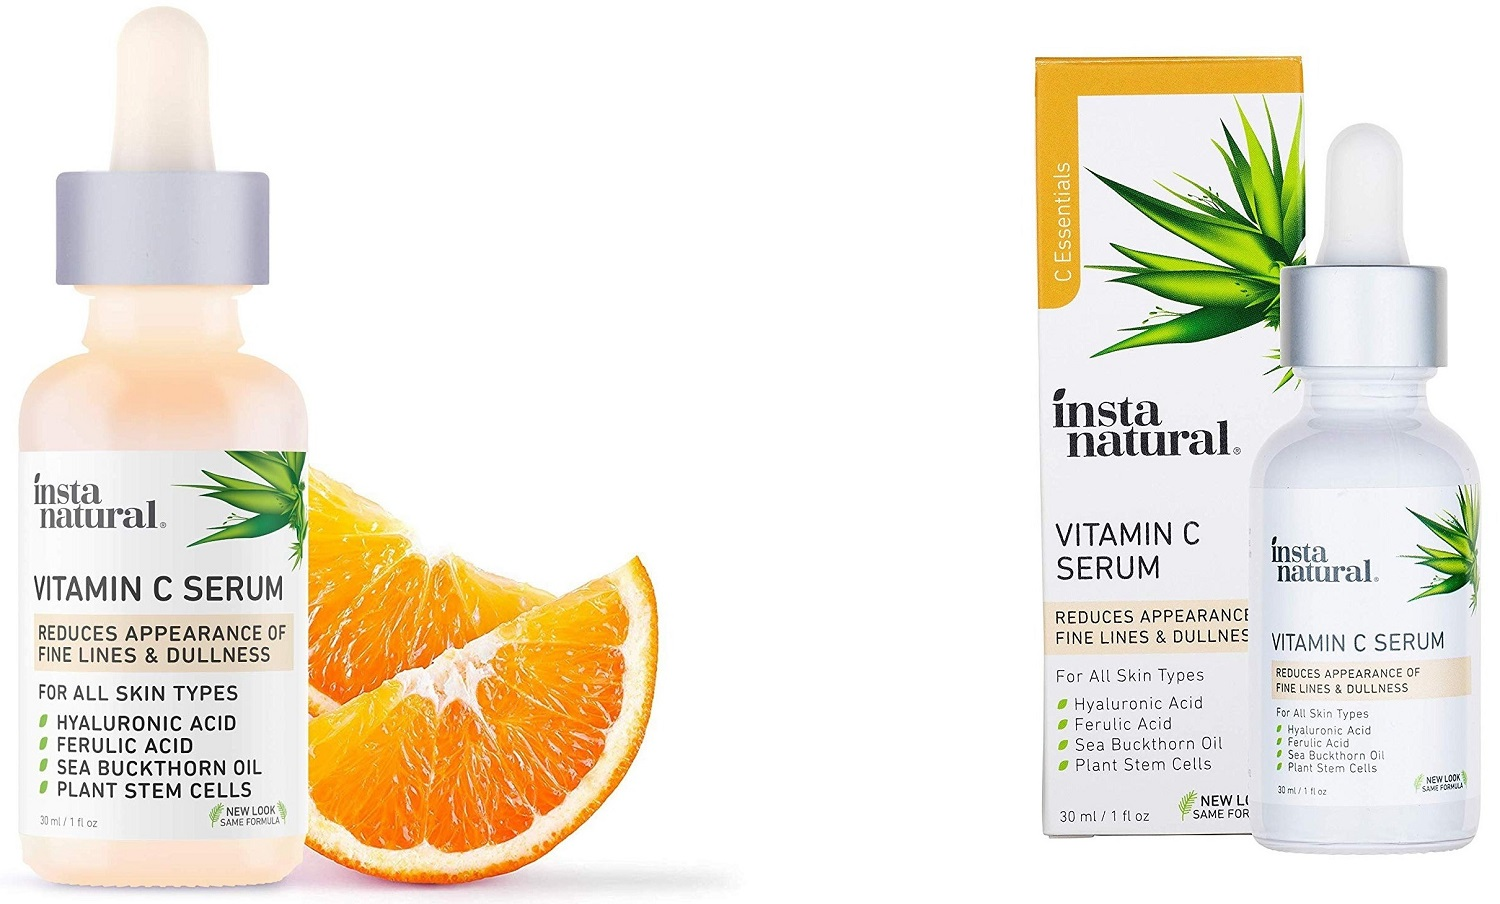 instanatural serum vitamin c